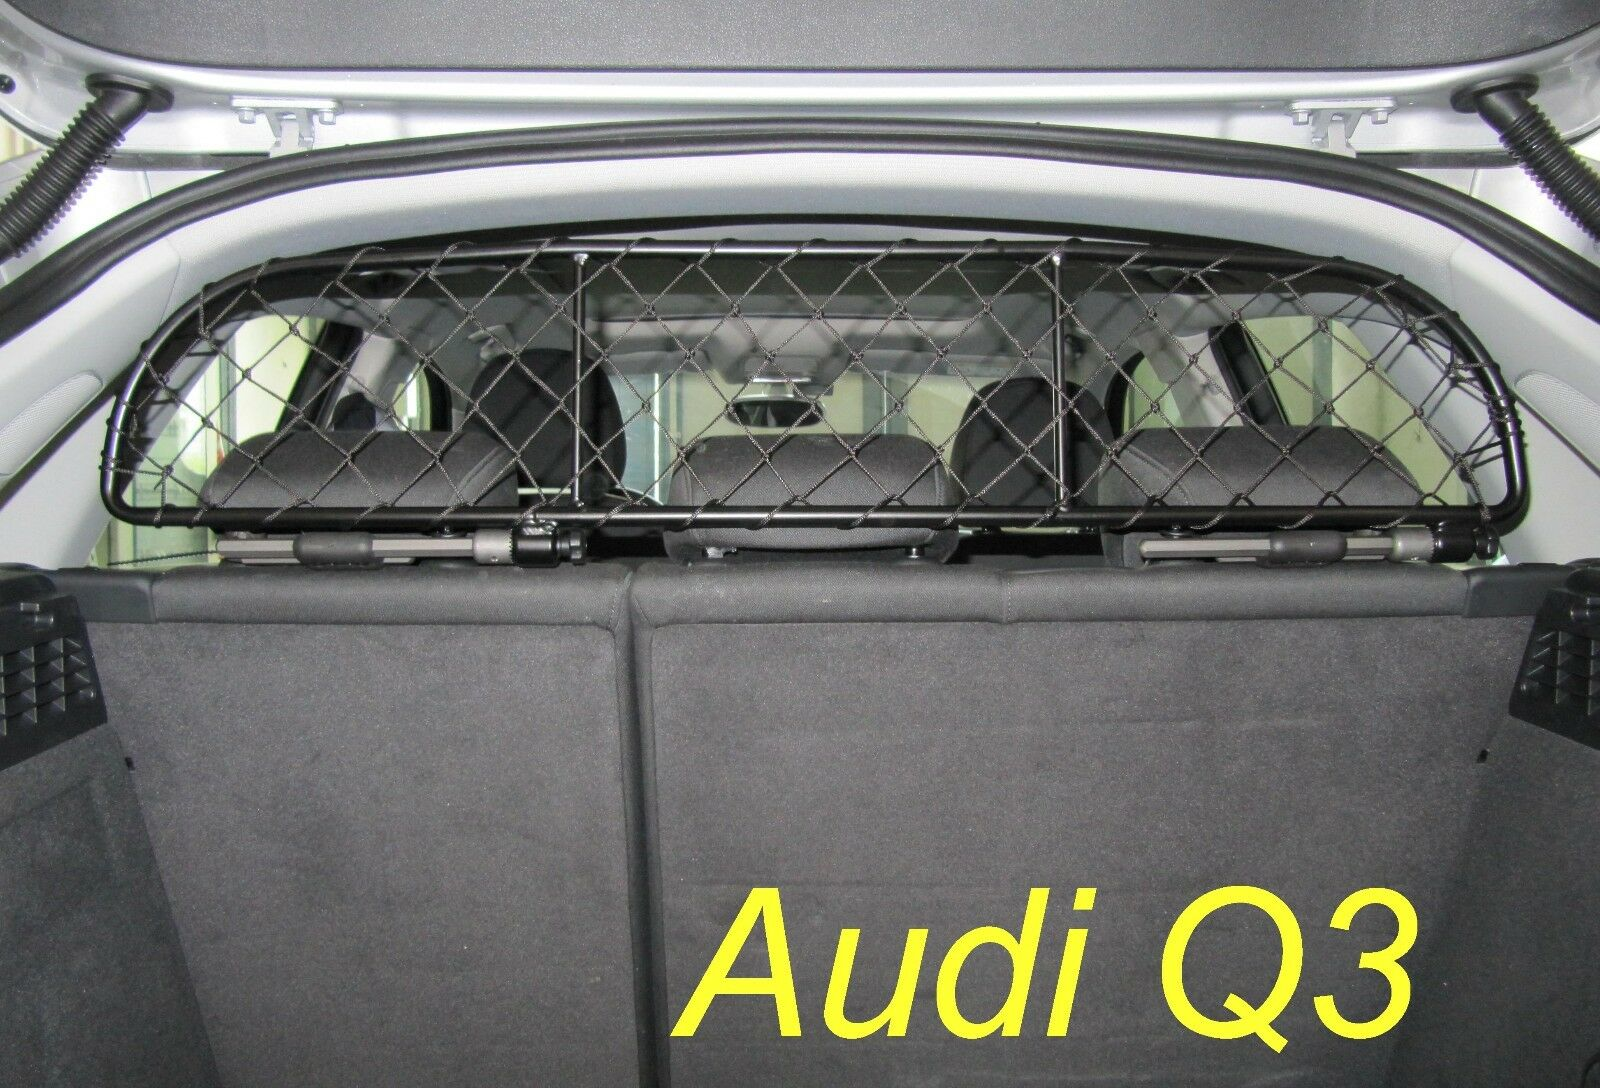 DOG GUARD PET Barrier Net And Screen For Audi Q For Luggage And - Barrier audi